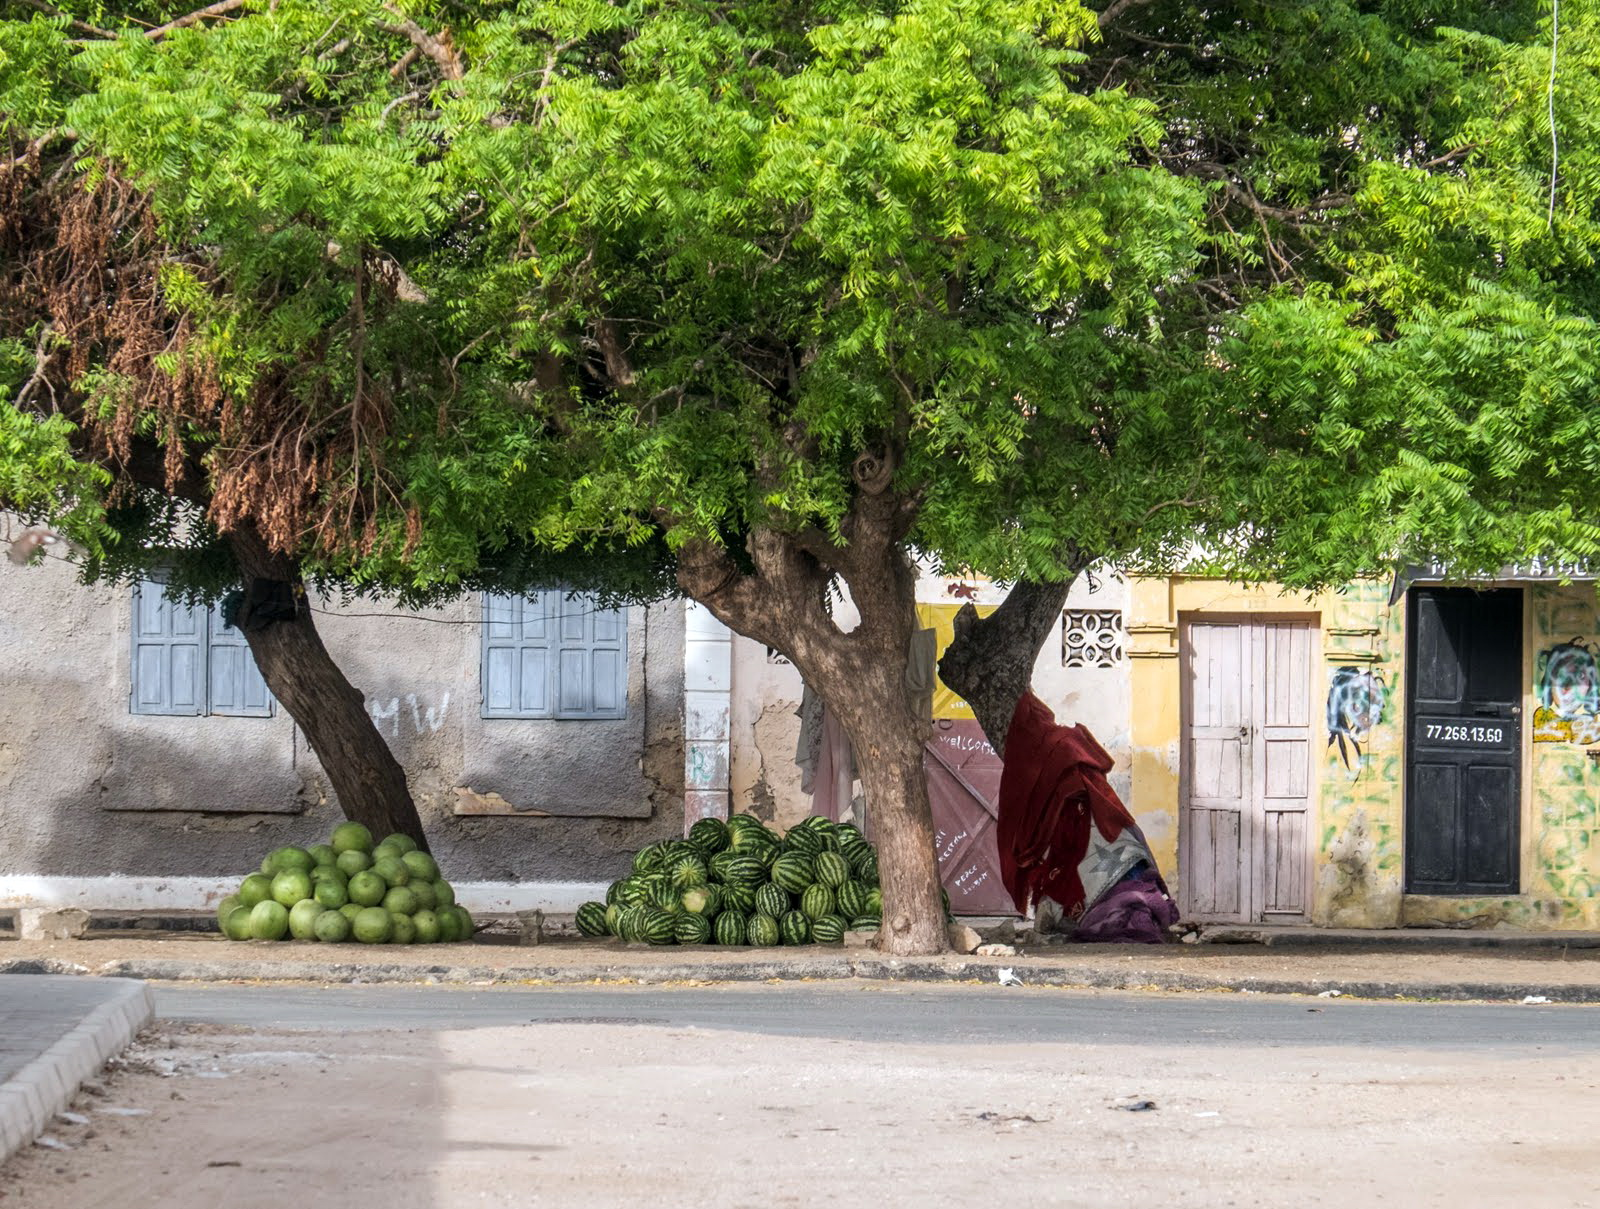 We were in Senegal at the height of the harvest season for many fruits and melons. It was common to see piles of watermelons along the roads and stacked on sidewalks, like the ones in the photo. Many of these fruit stands seemed to be unattended, I assume that buyers would select a melon and then pay the grower directly.